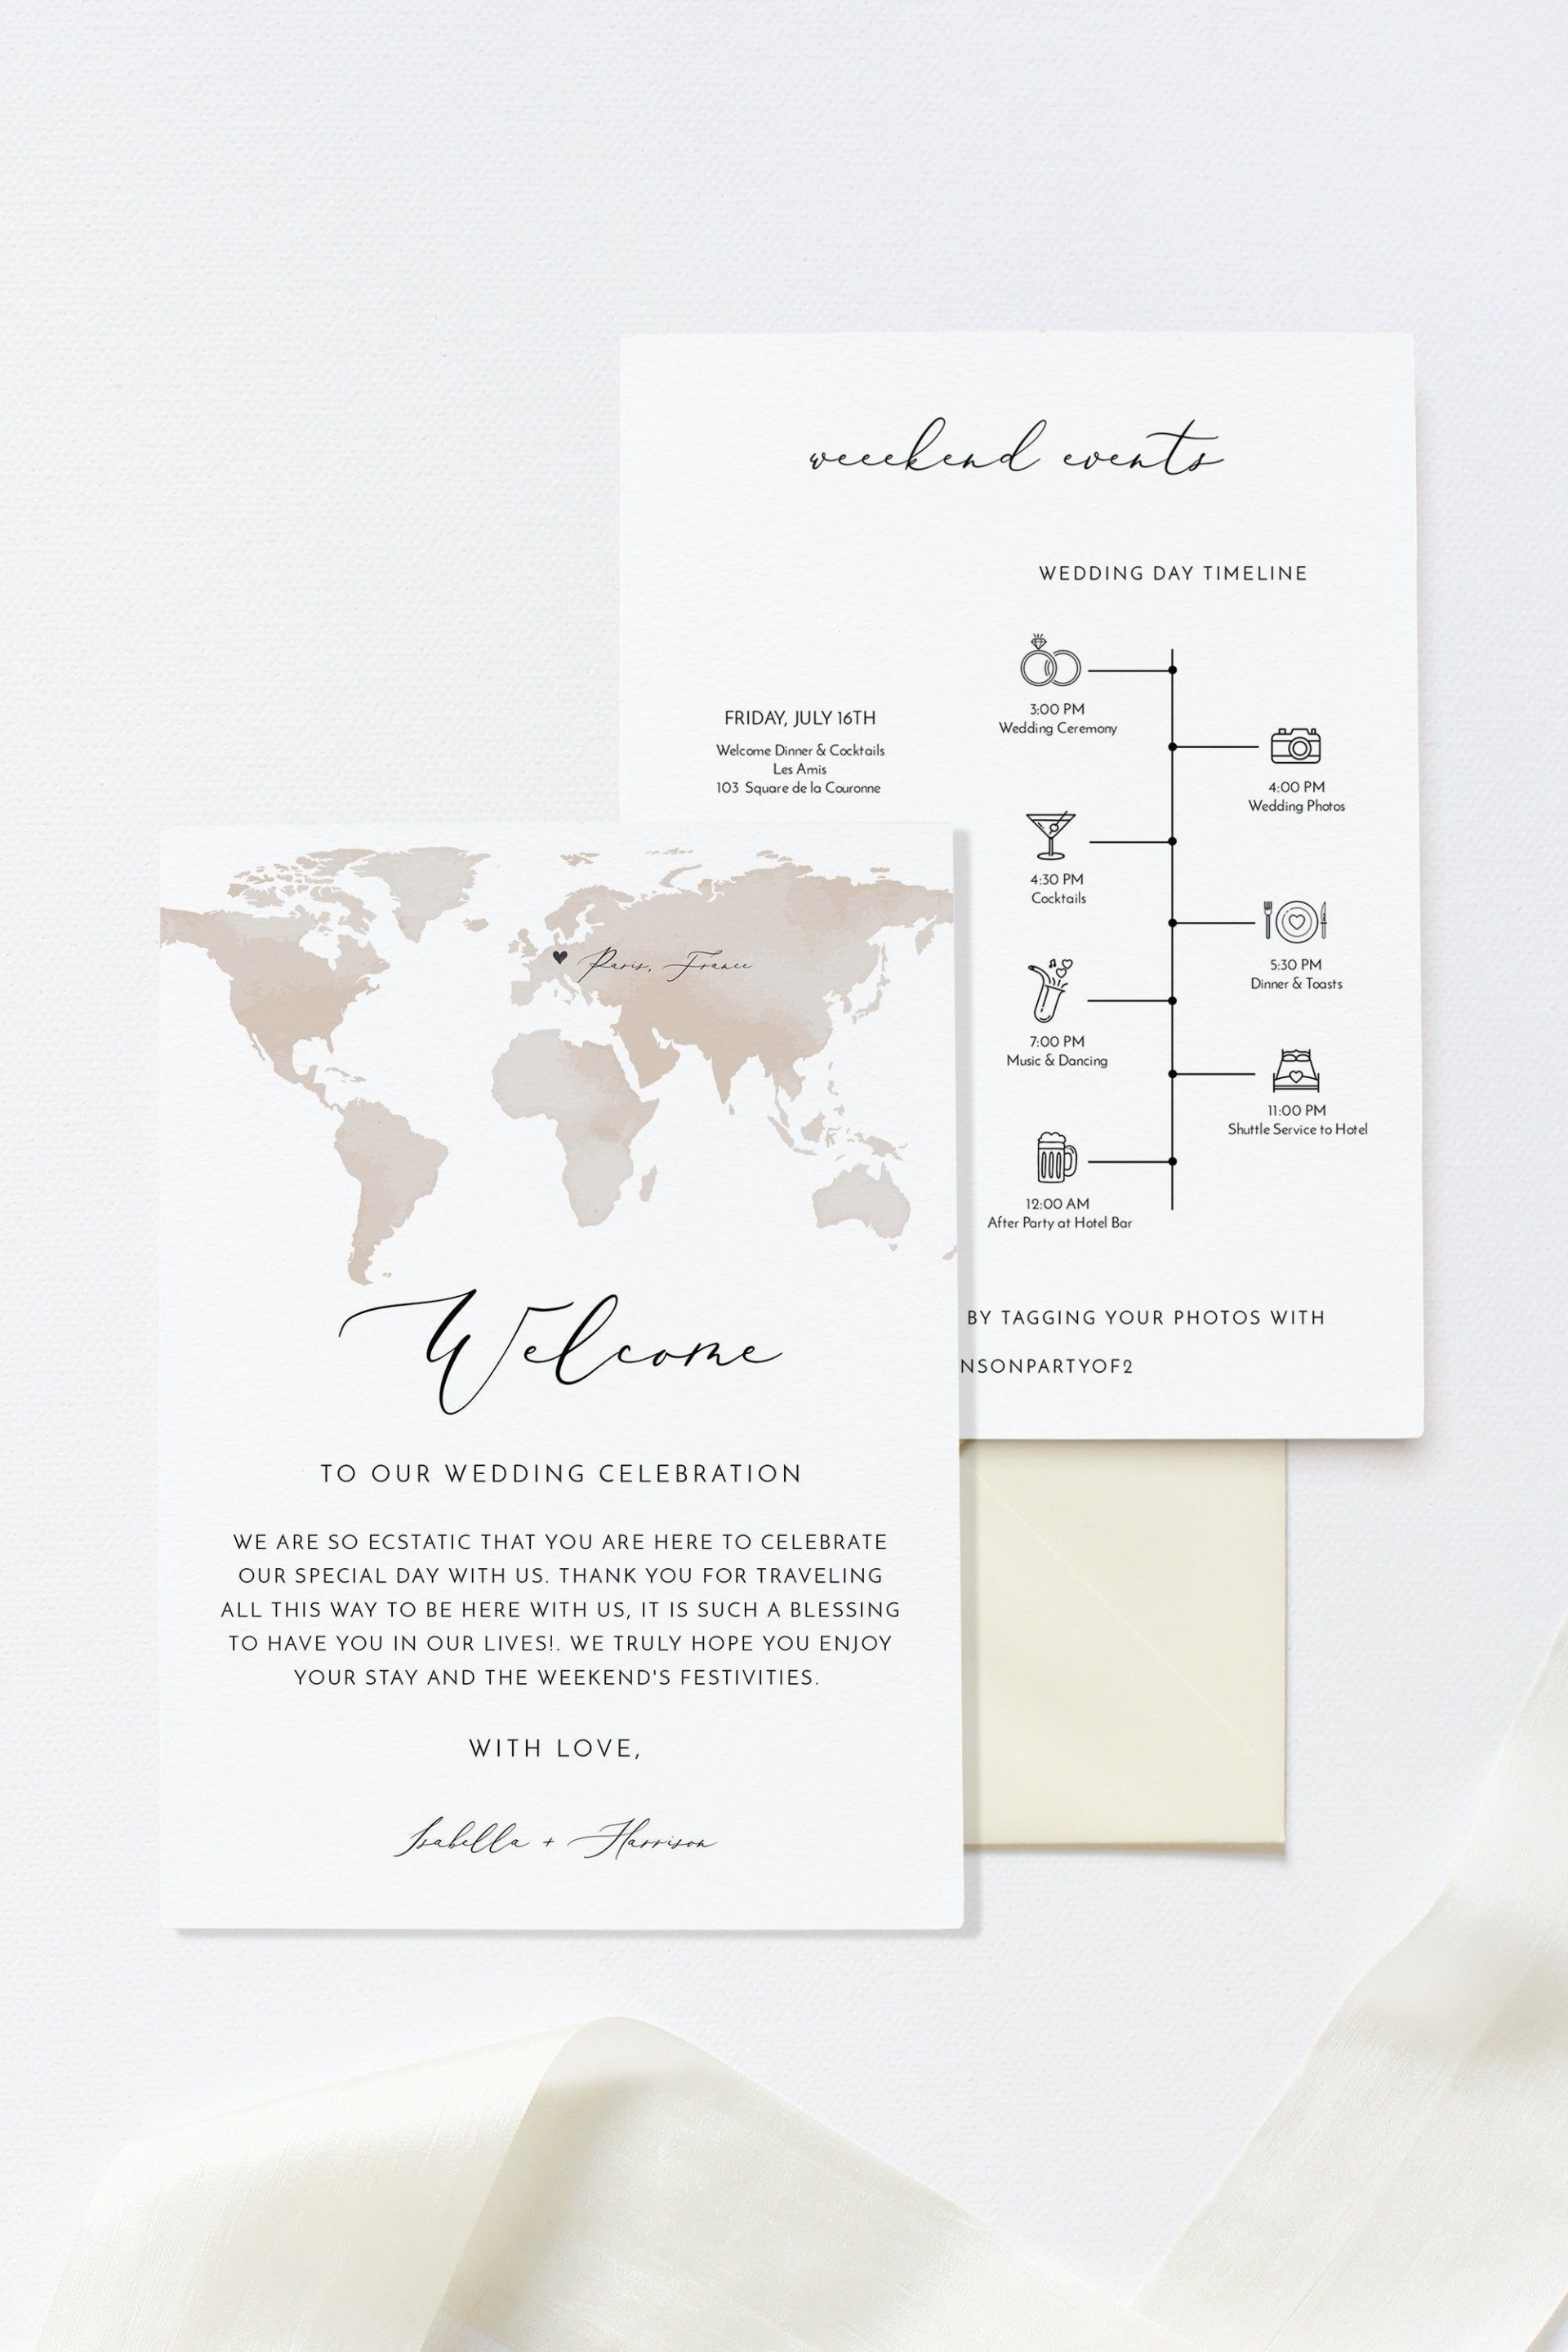 002 Beautiful Destination Wedding Welcome Letter And Itinerary Template Image 1920